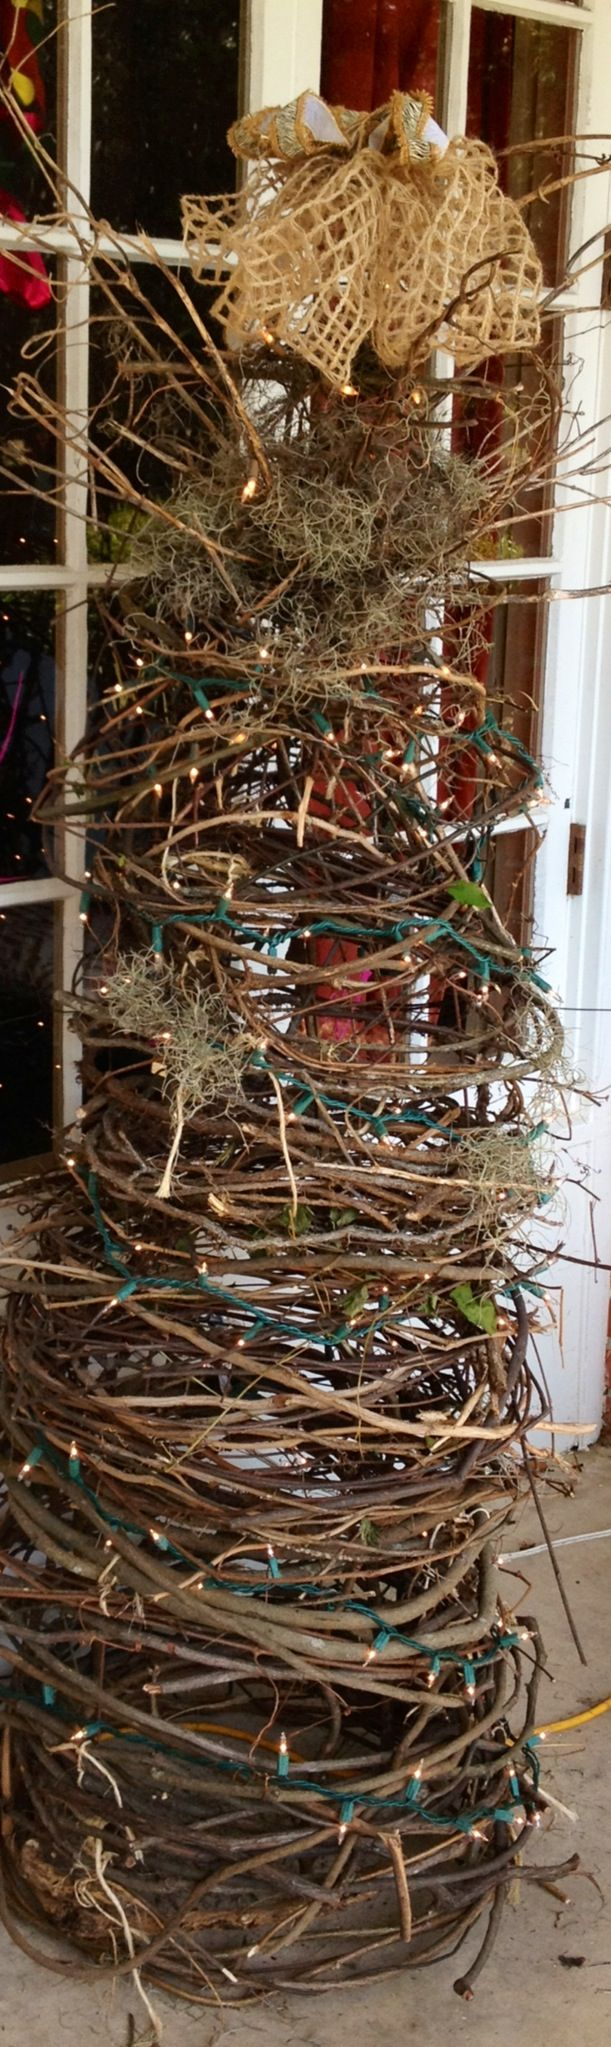 """Pulled grapevine """"bendy wood"""" as my BFF calls it, from my woods.  Wrapped around tomato cage turned upside down and voila!   Going to use it year round."""